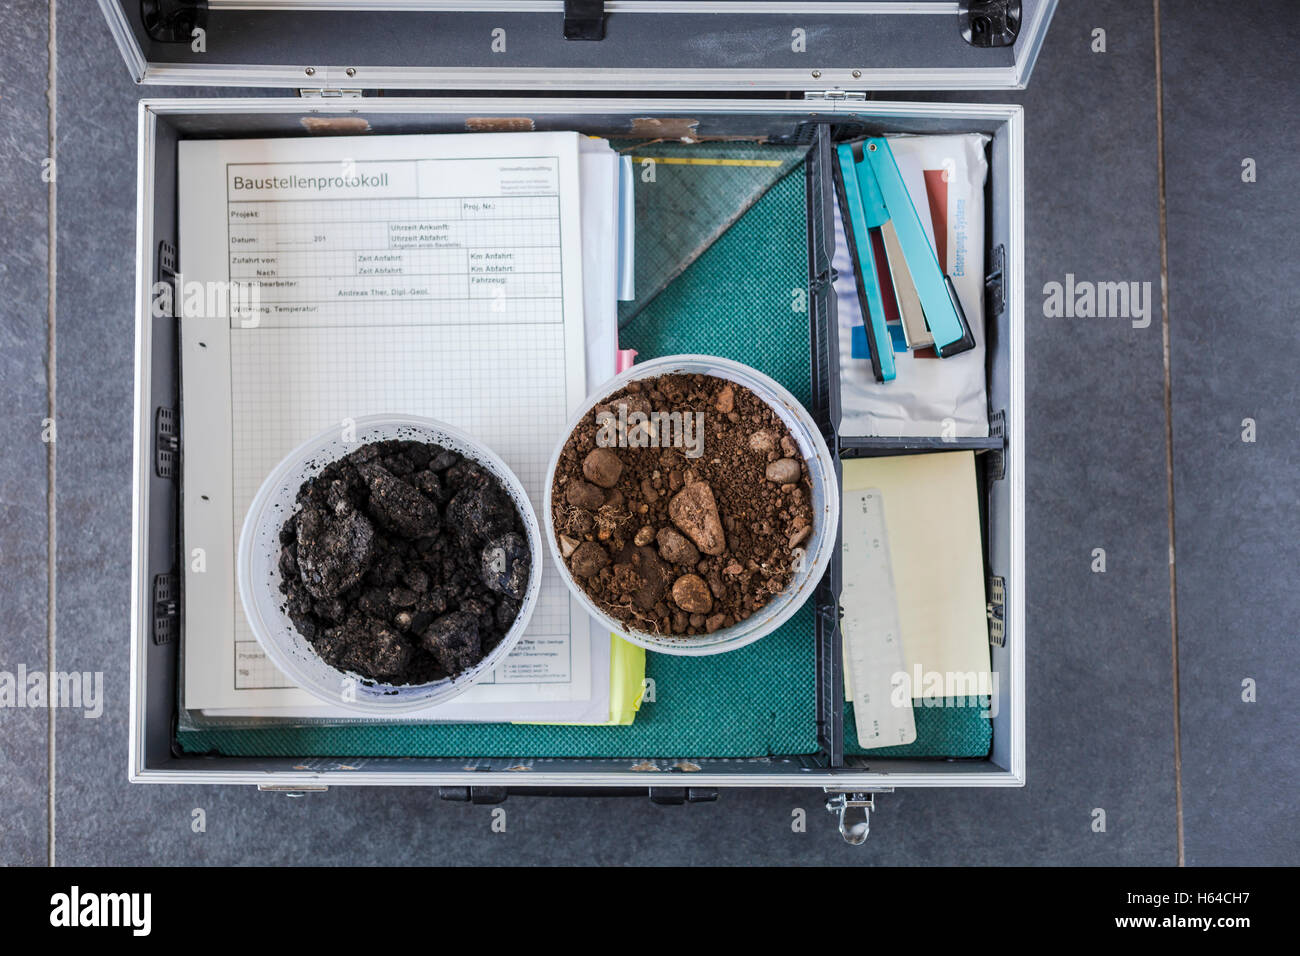 Case of geotechnical expert with soil samples and documents - Stock Image